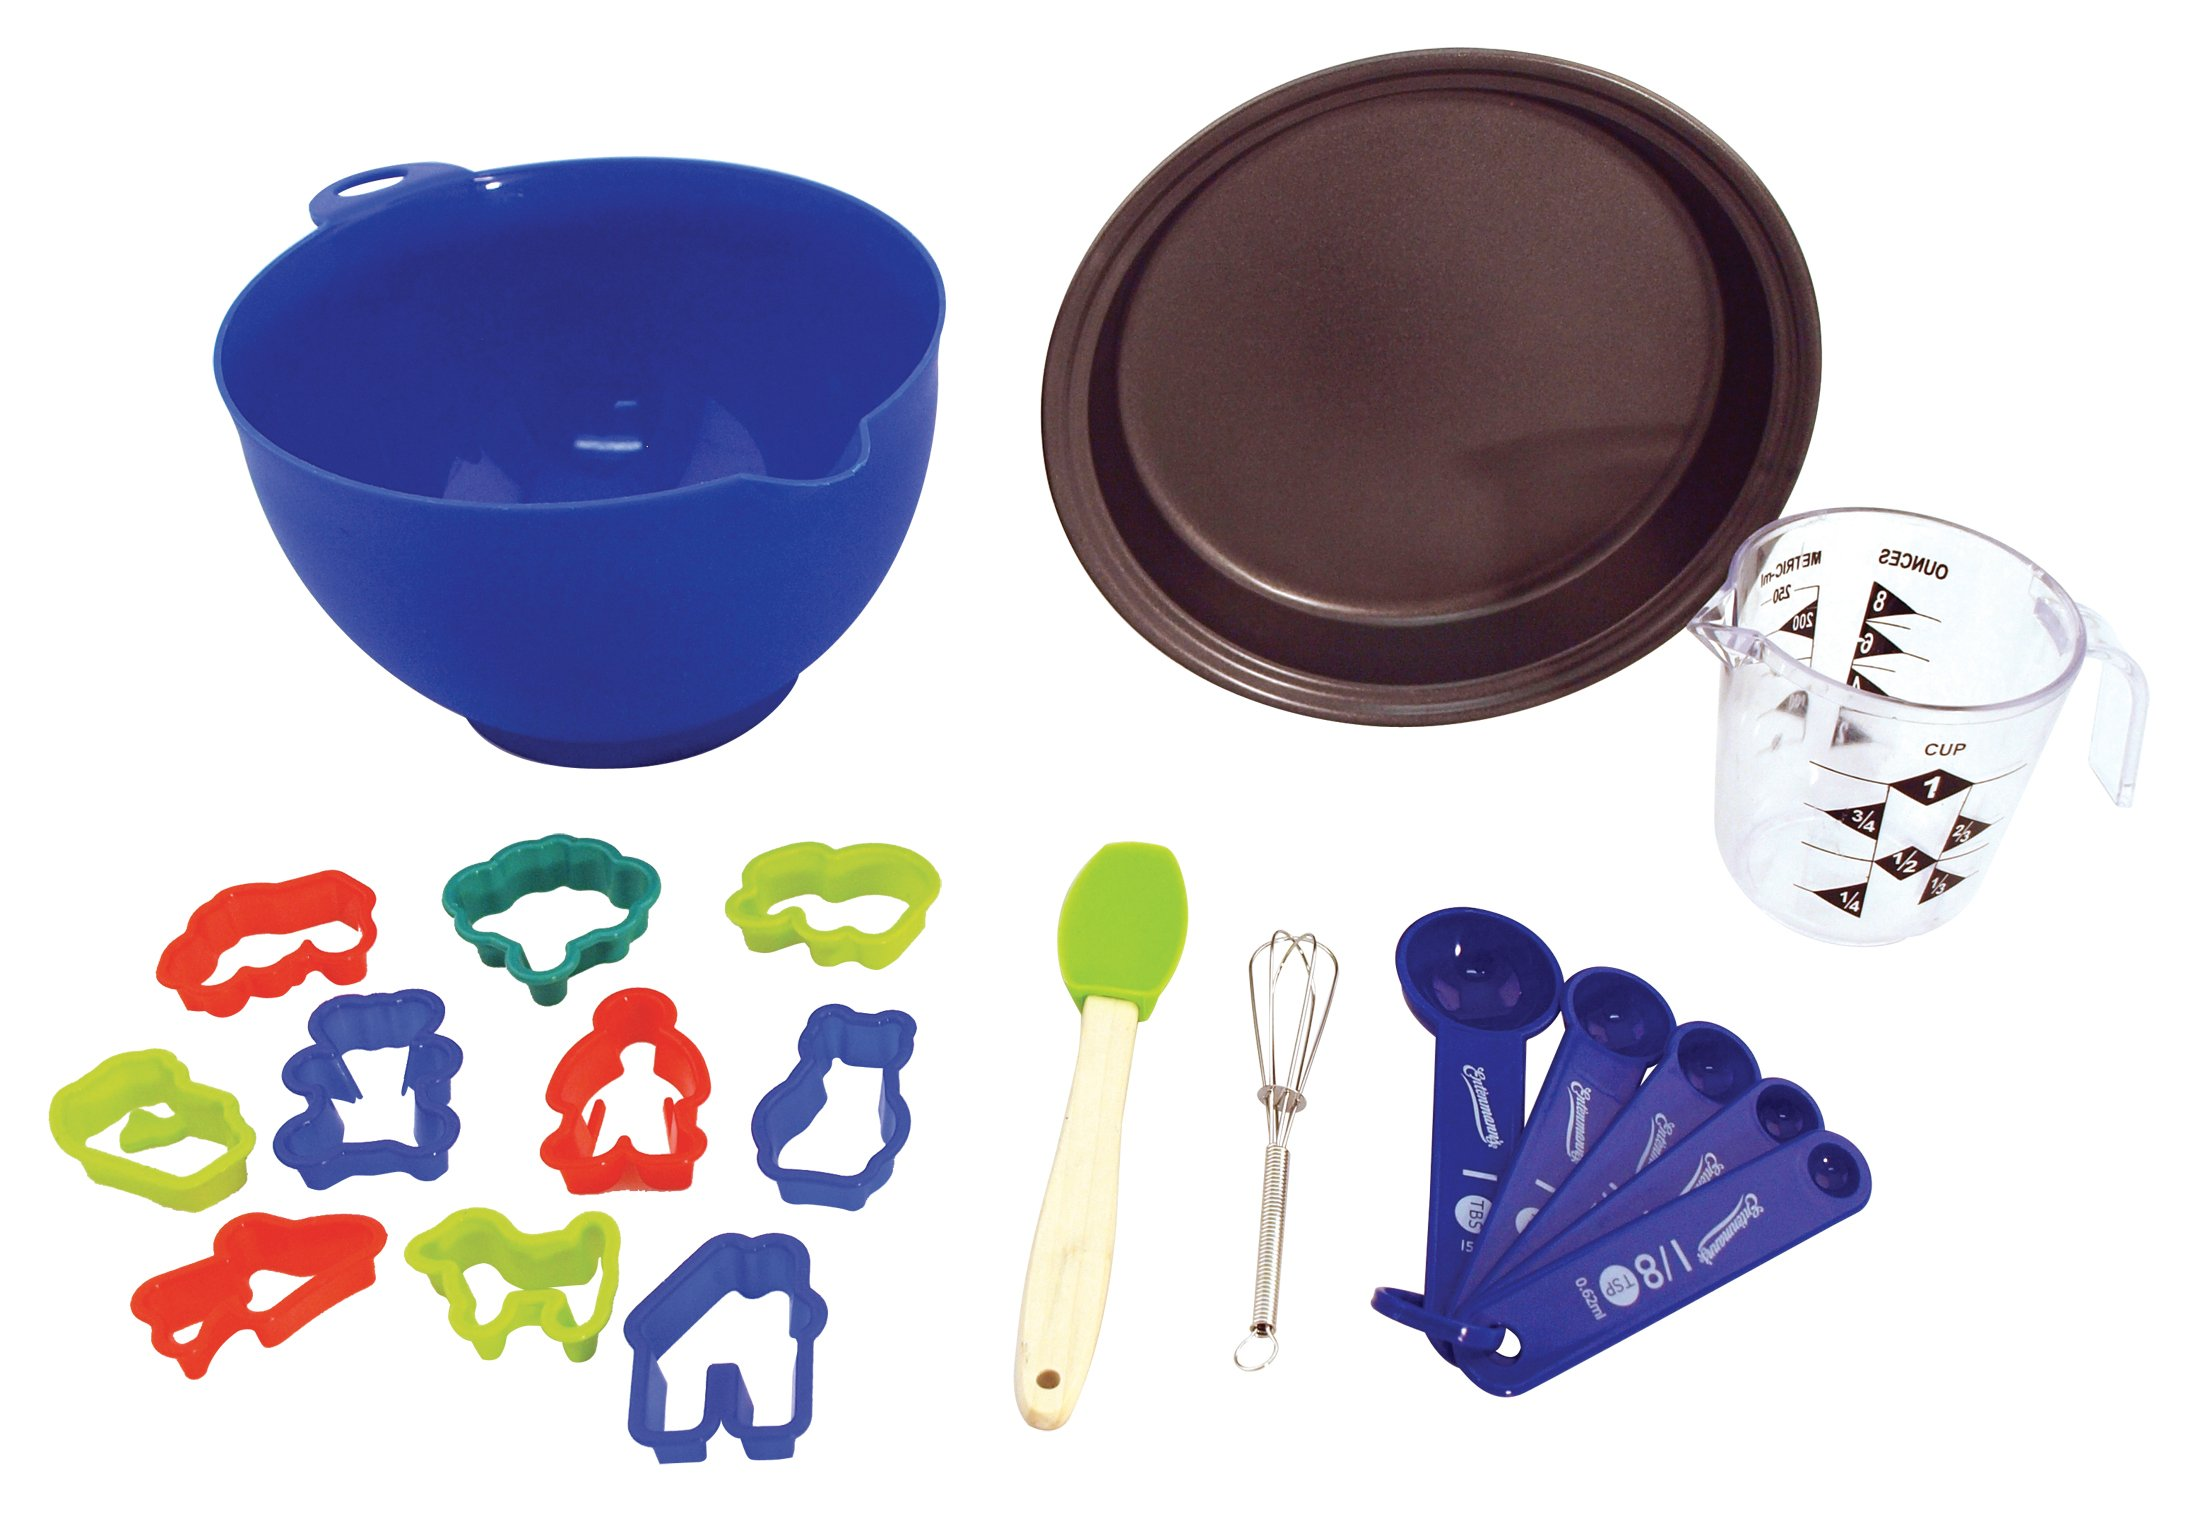 Entemann's ENT39013 16-Piece Kids Baking Set